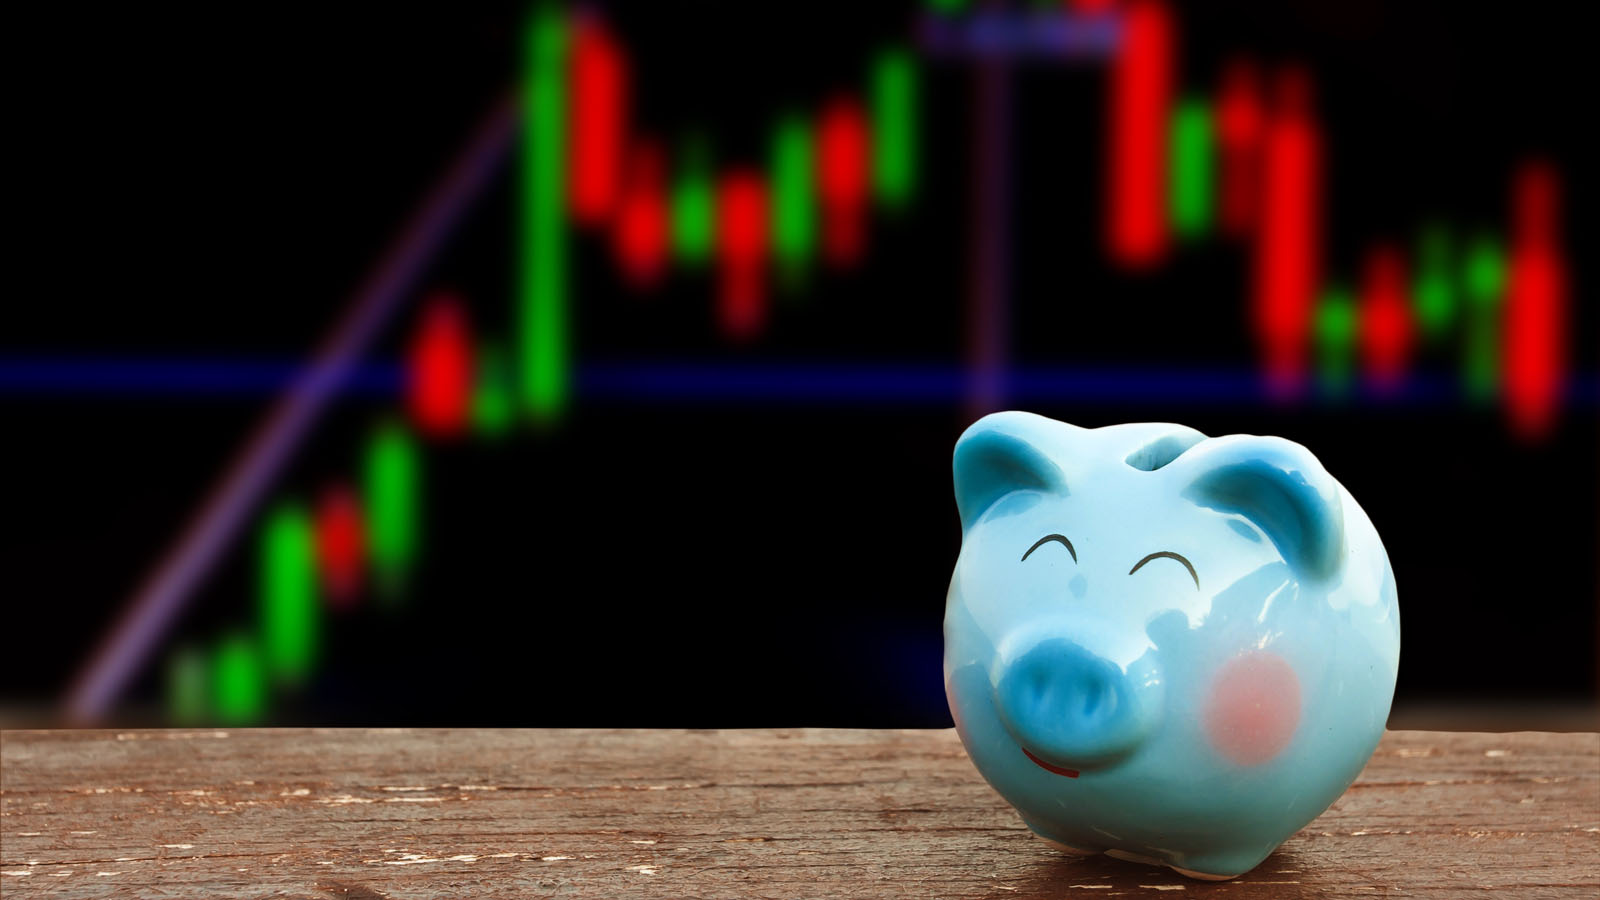 7 Cheap Stocks Under 1 That Deserve A Second Look Investorplace